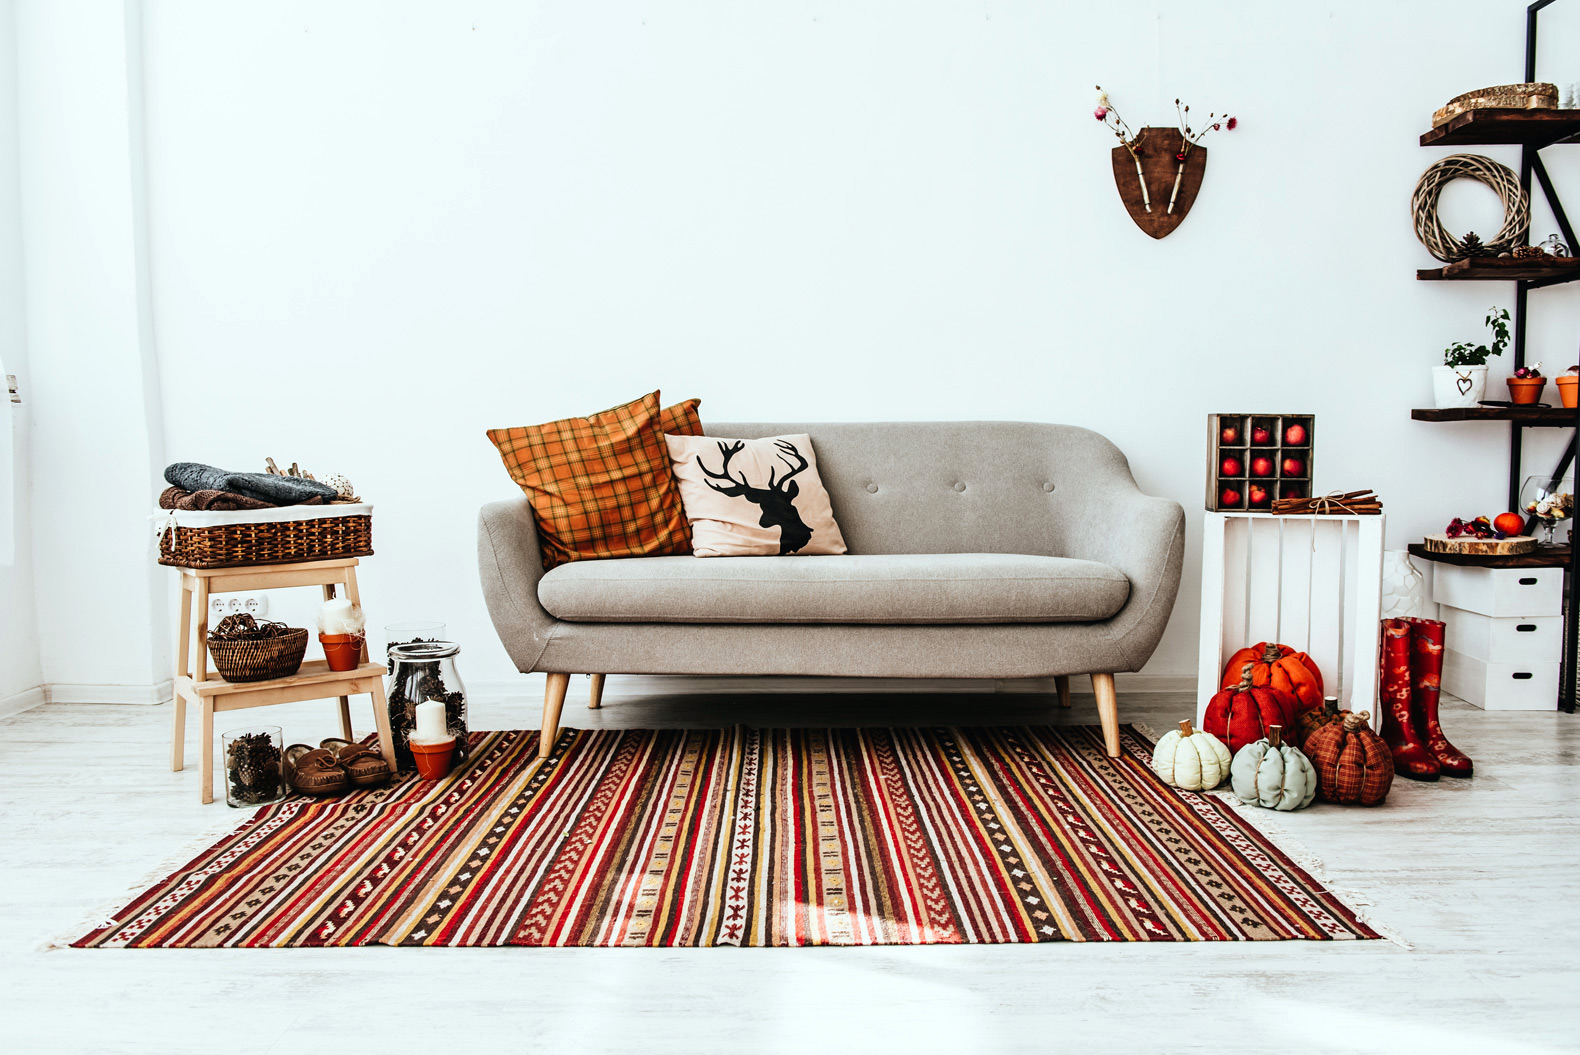 DIY fall decor using upcycled items from thrift stores